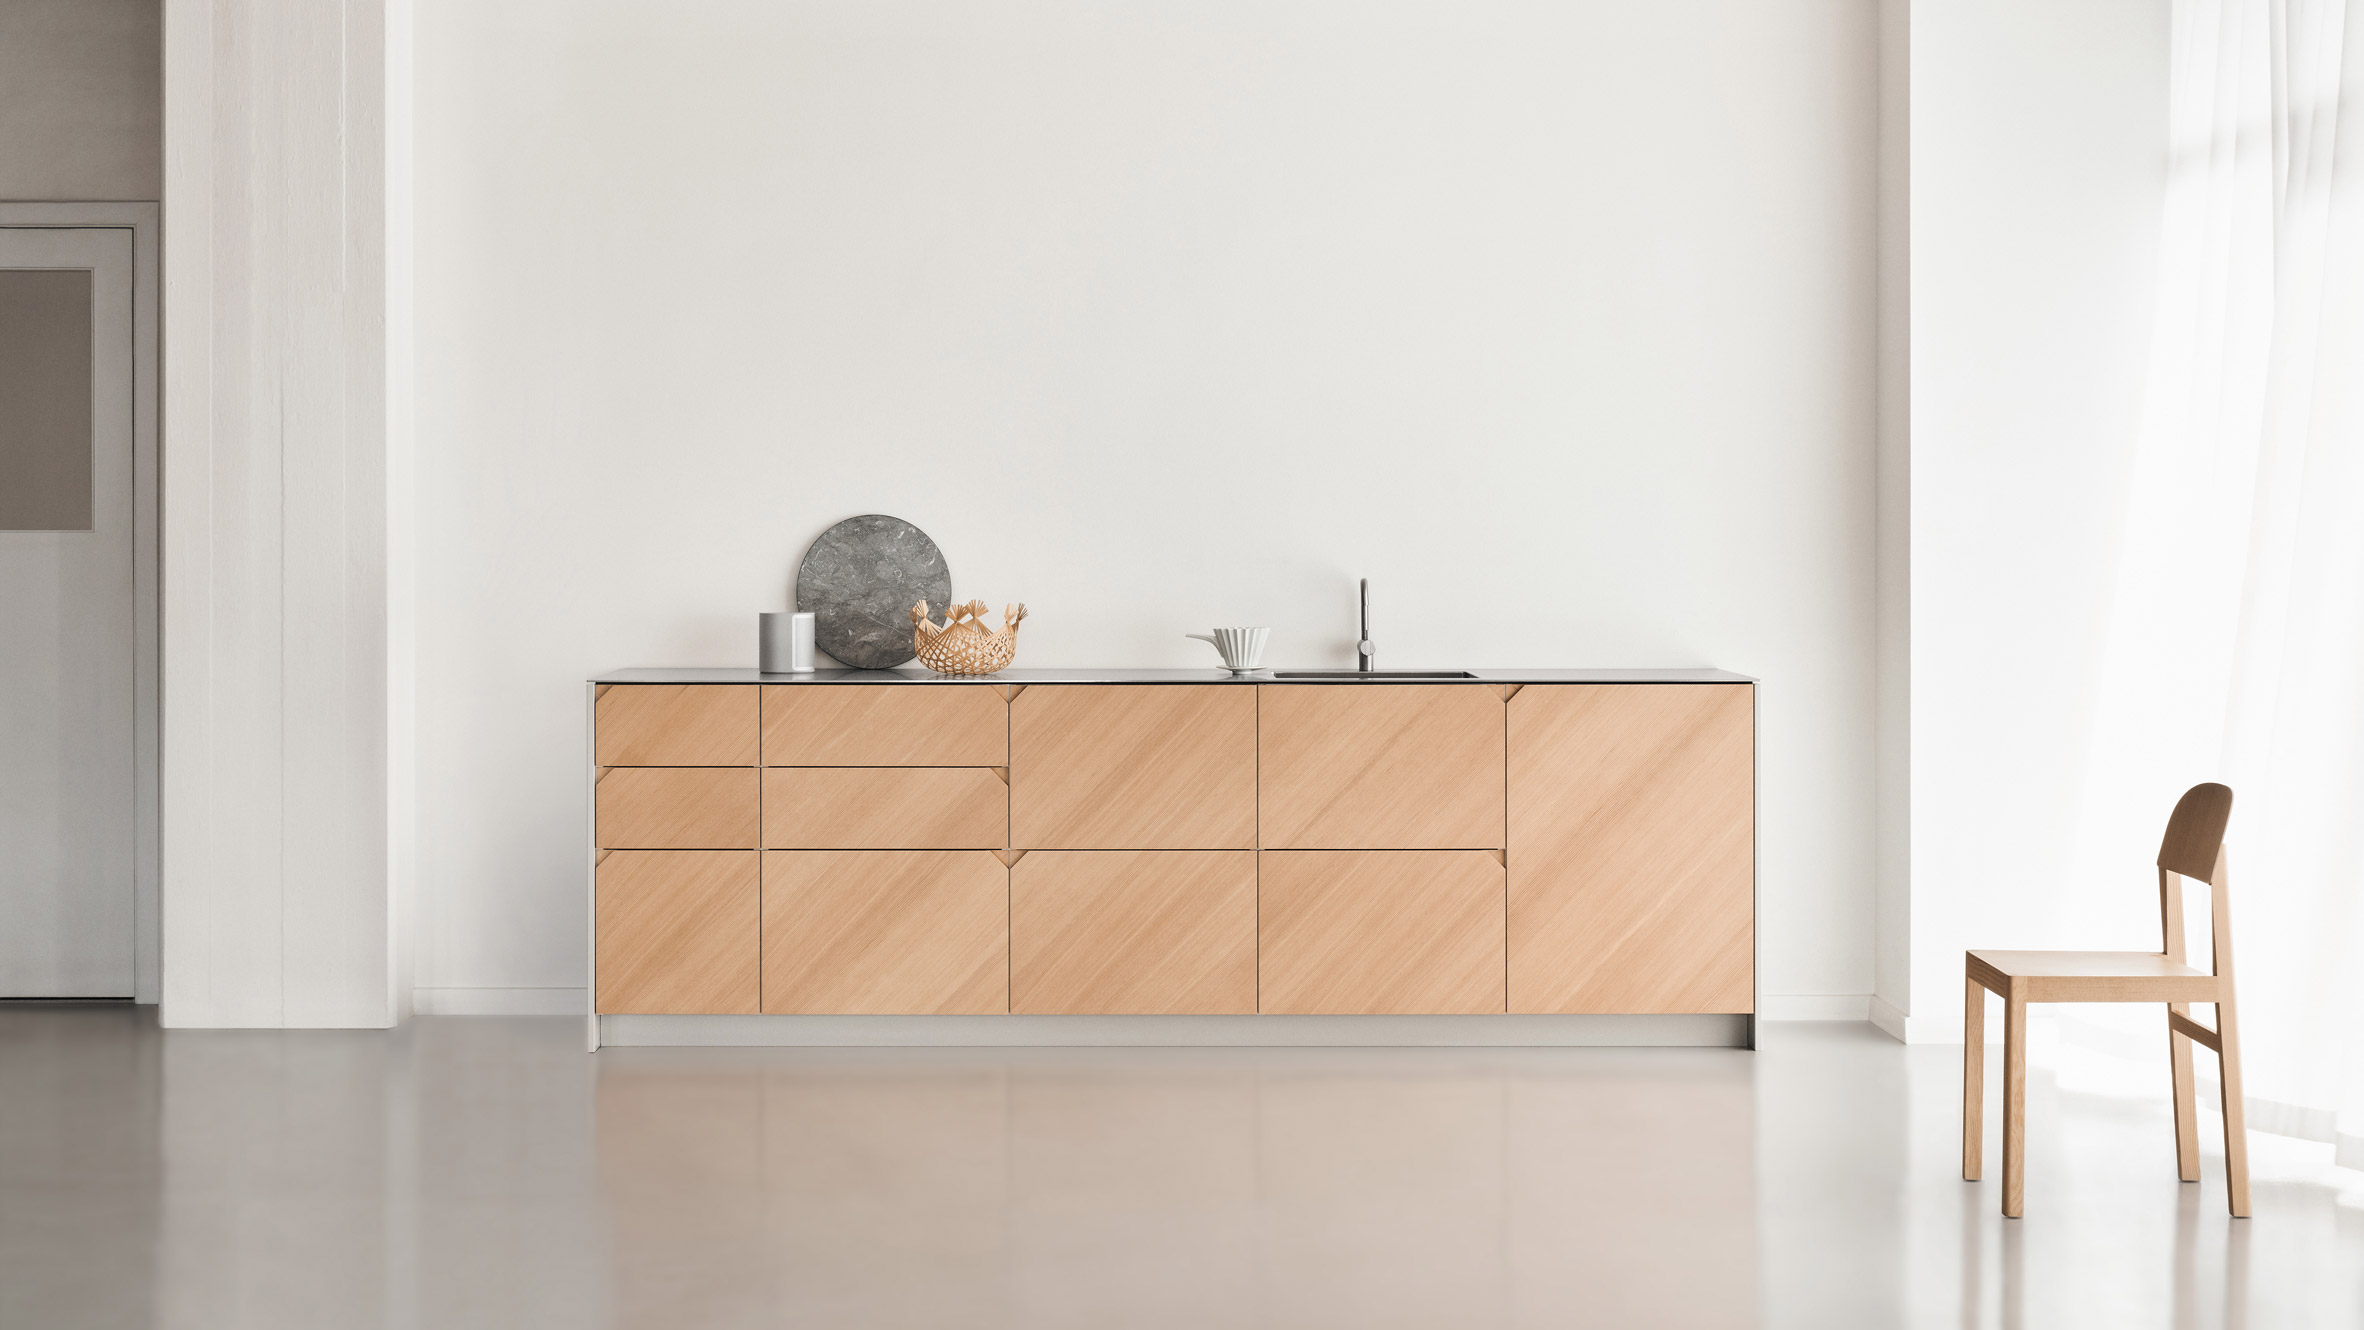 Alternative Fronten Ikea Küche Cecilie Manz Hacks Ikea Kitchen Using Steel And Warm Toned Wood